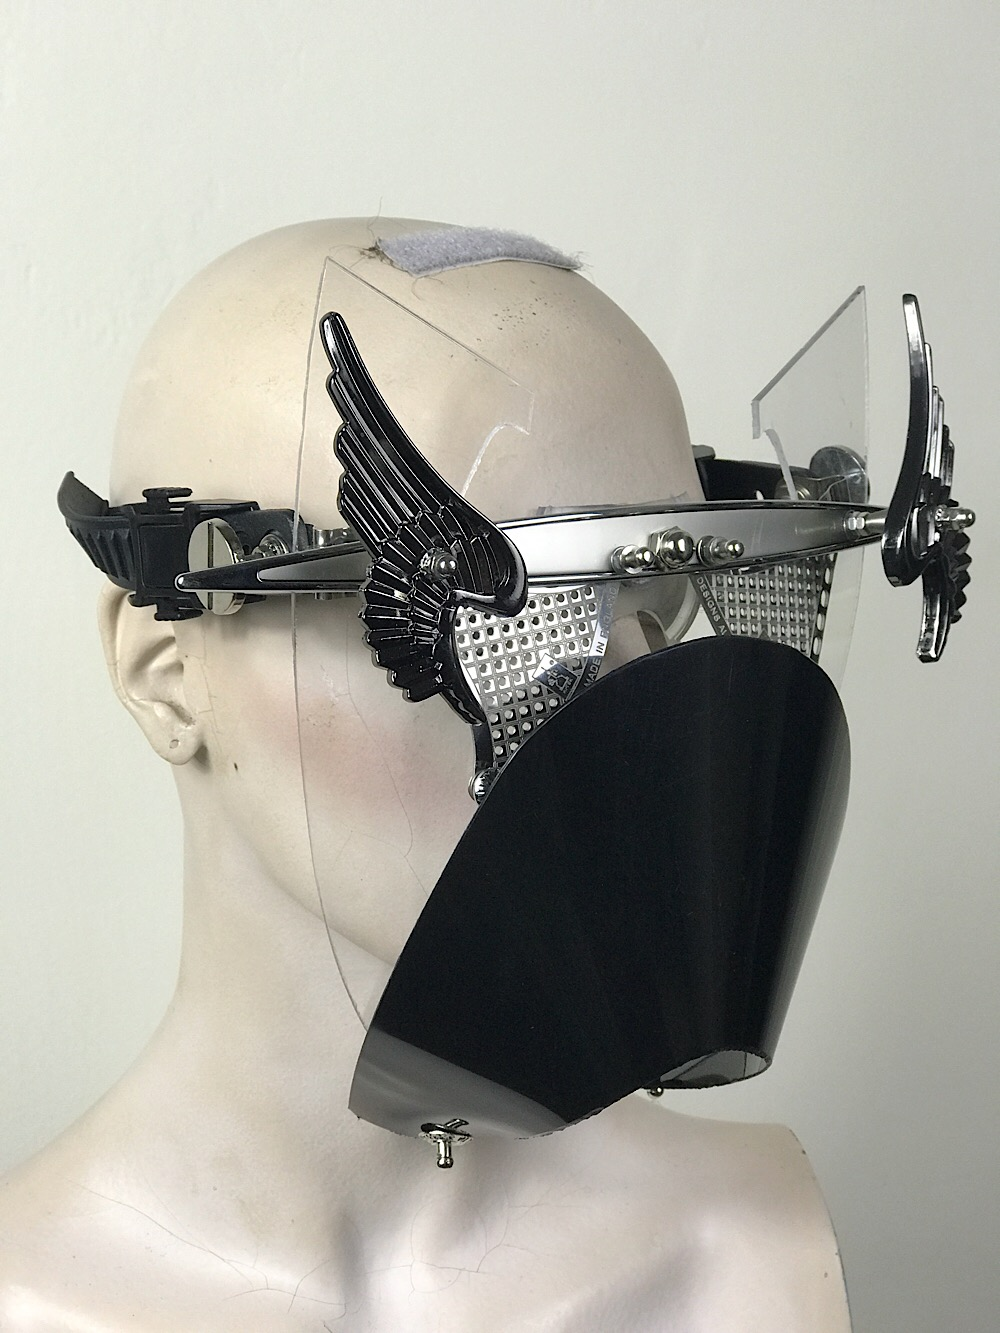 Metal mask with wings perforated metal ocular lenses and muzzle